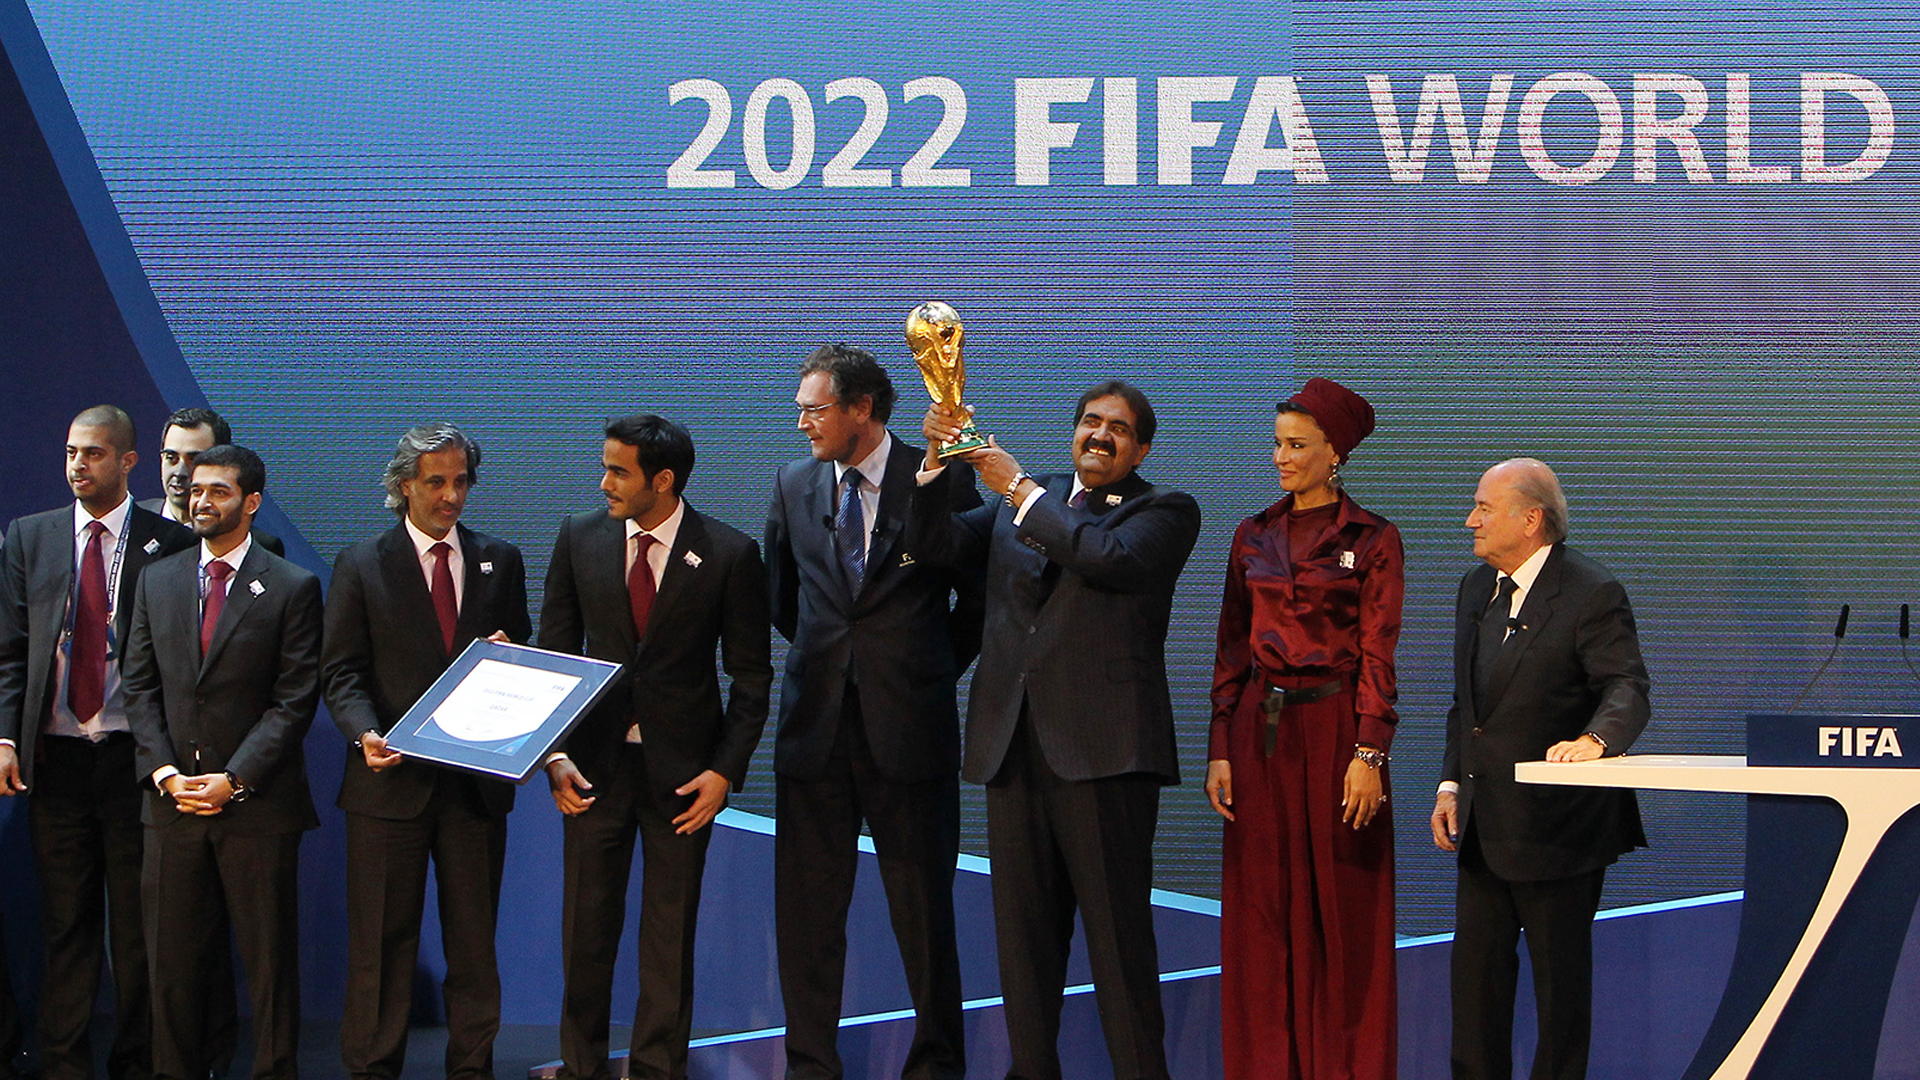 A group of Qatari soccer officials, one holding the World Cup trophy, stand next to FIFA President Sepp Blatter after being named the host nation for the 2022 World Cup.